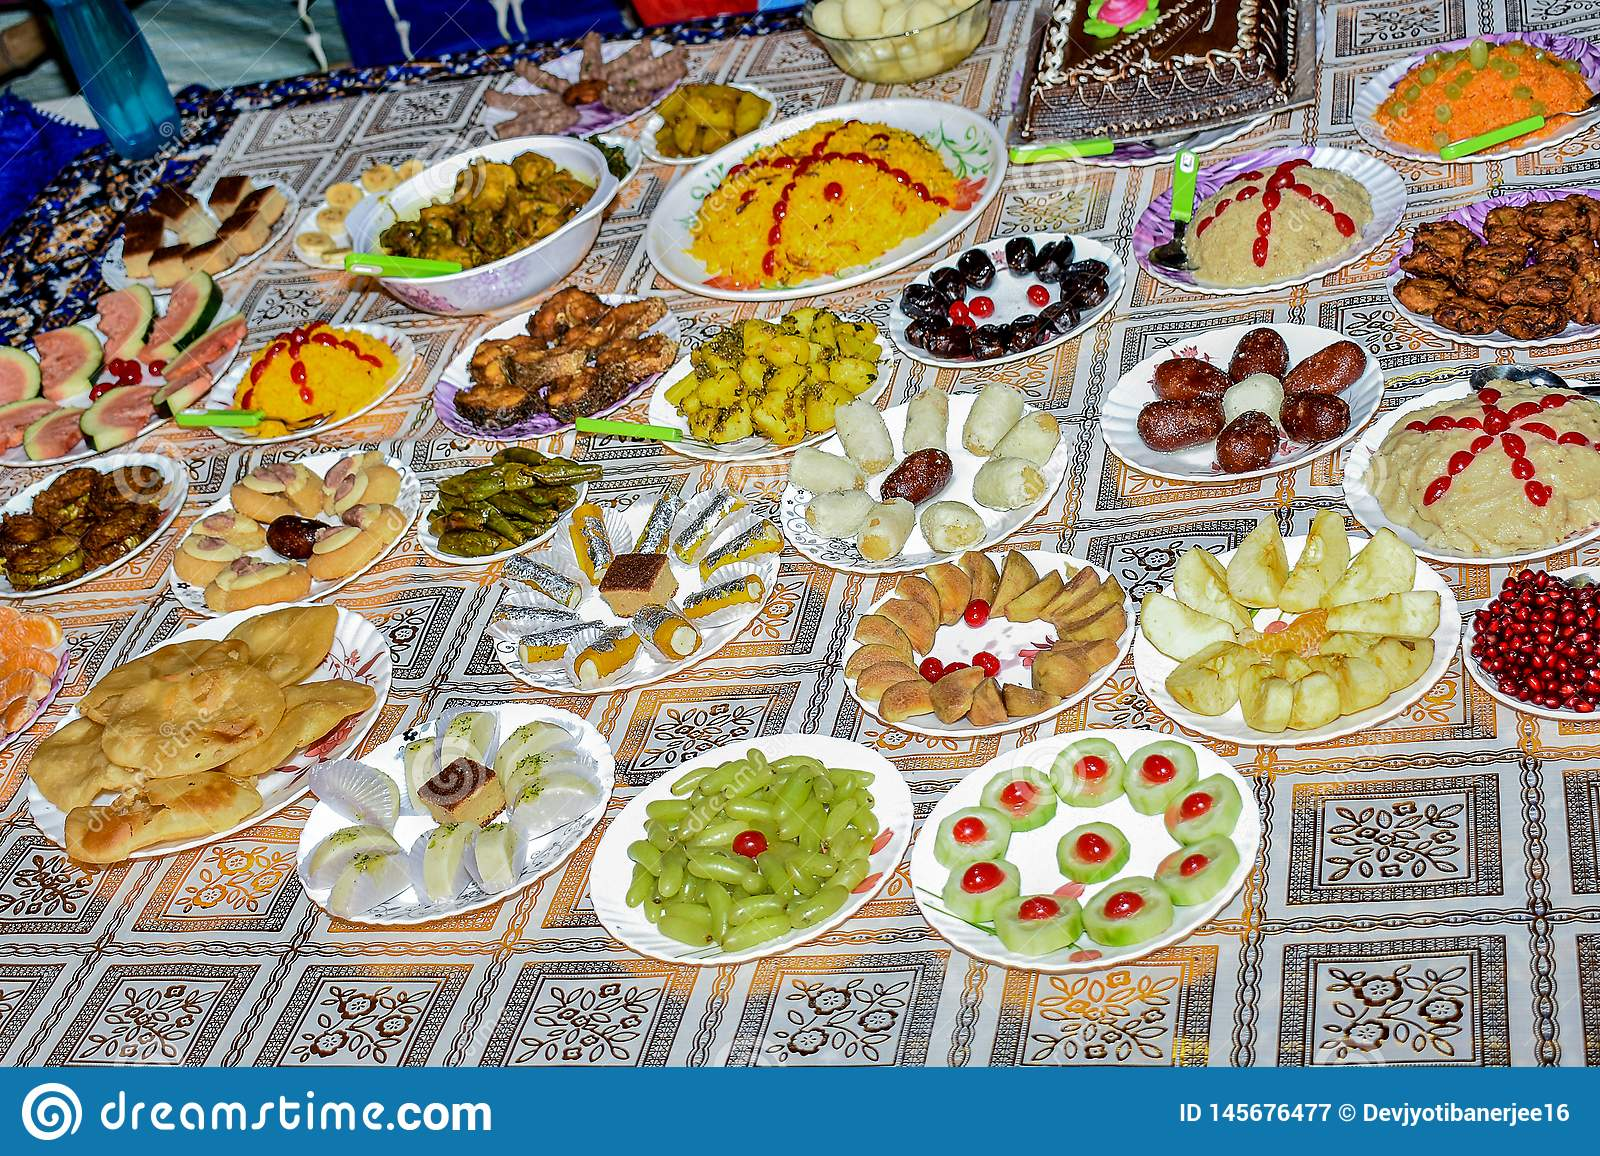 This is a image of Indian dishes. Given the range of diversity in soil type, climate and occupations, these cuisines vary